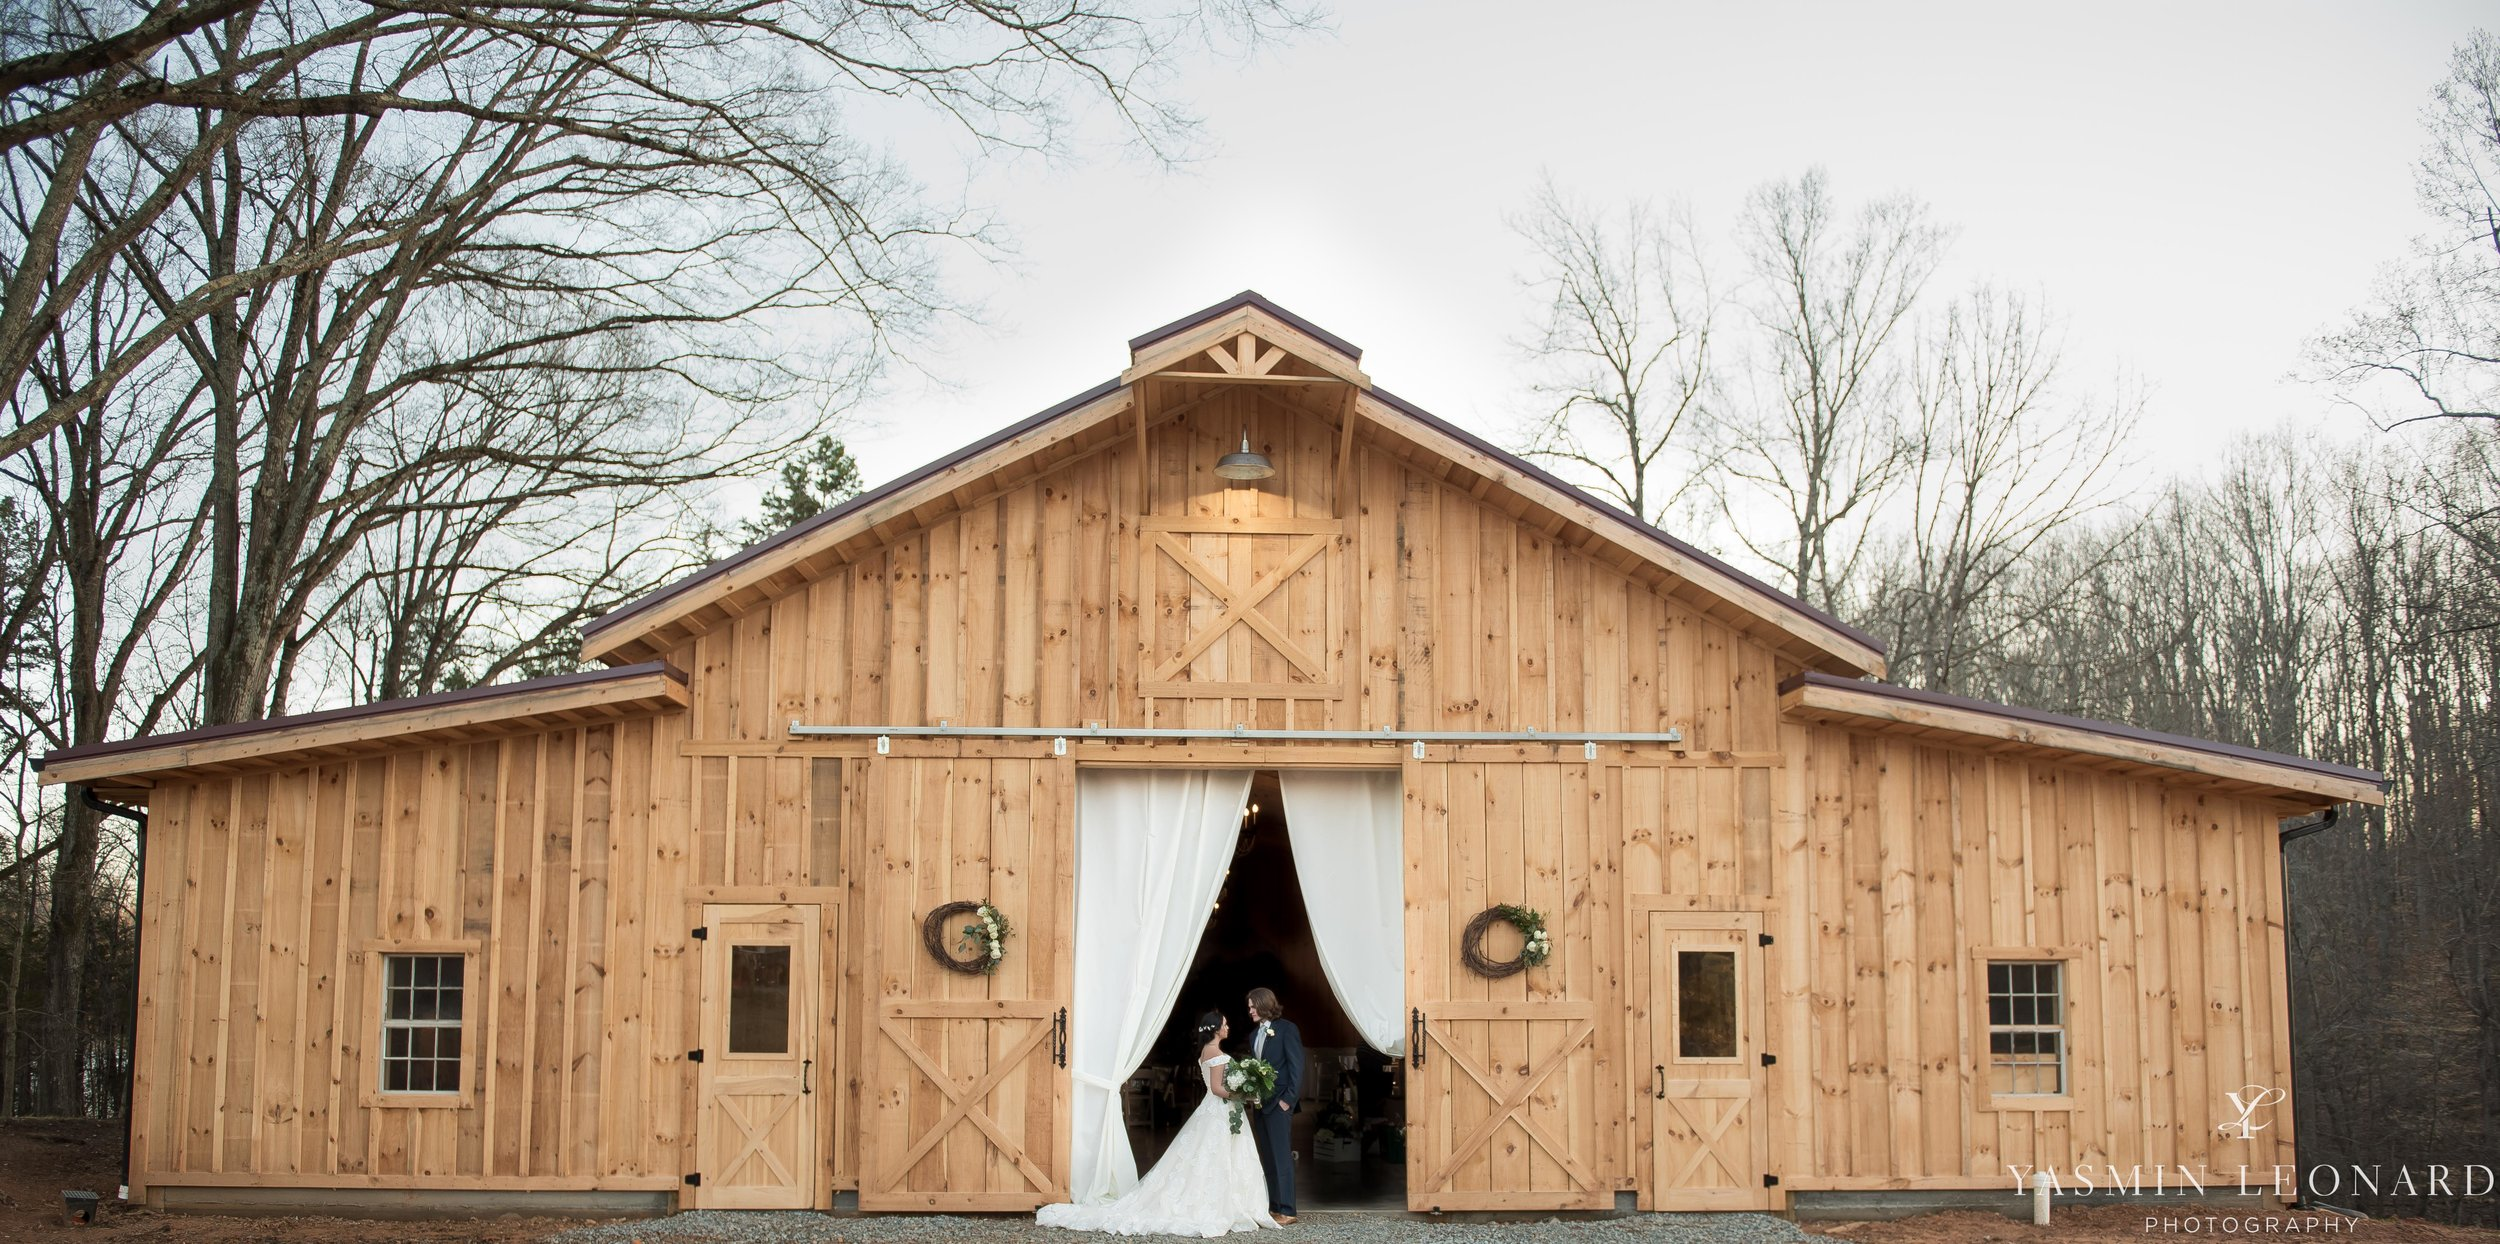 Old Homeplace Vineyard - Grits and Glitter - Dashing Dames Bridal Boutique - Just Priceless - Yasmin Leonard Photography - High Point Weddings - NC Weddings - NC Wedding Venues - High Point Jewelers - NC Wines - NC Vineyards - Cupcake Cuties-1.jpg